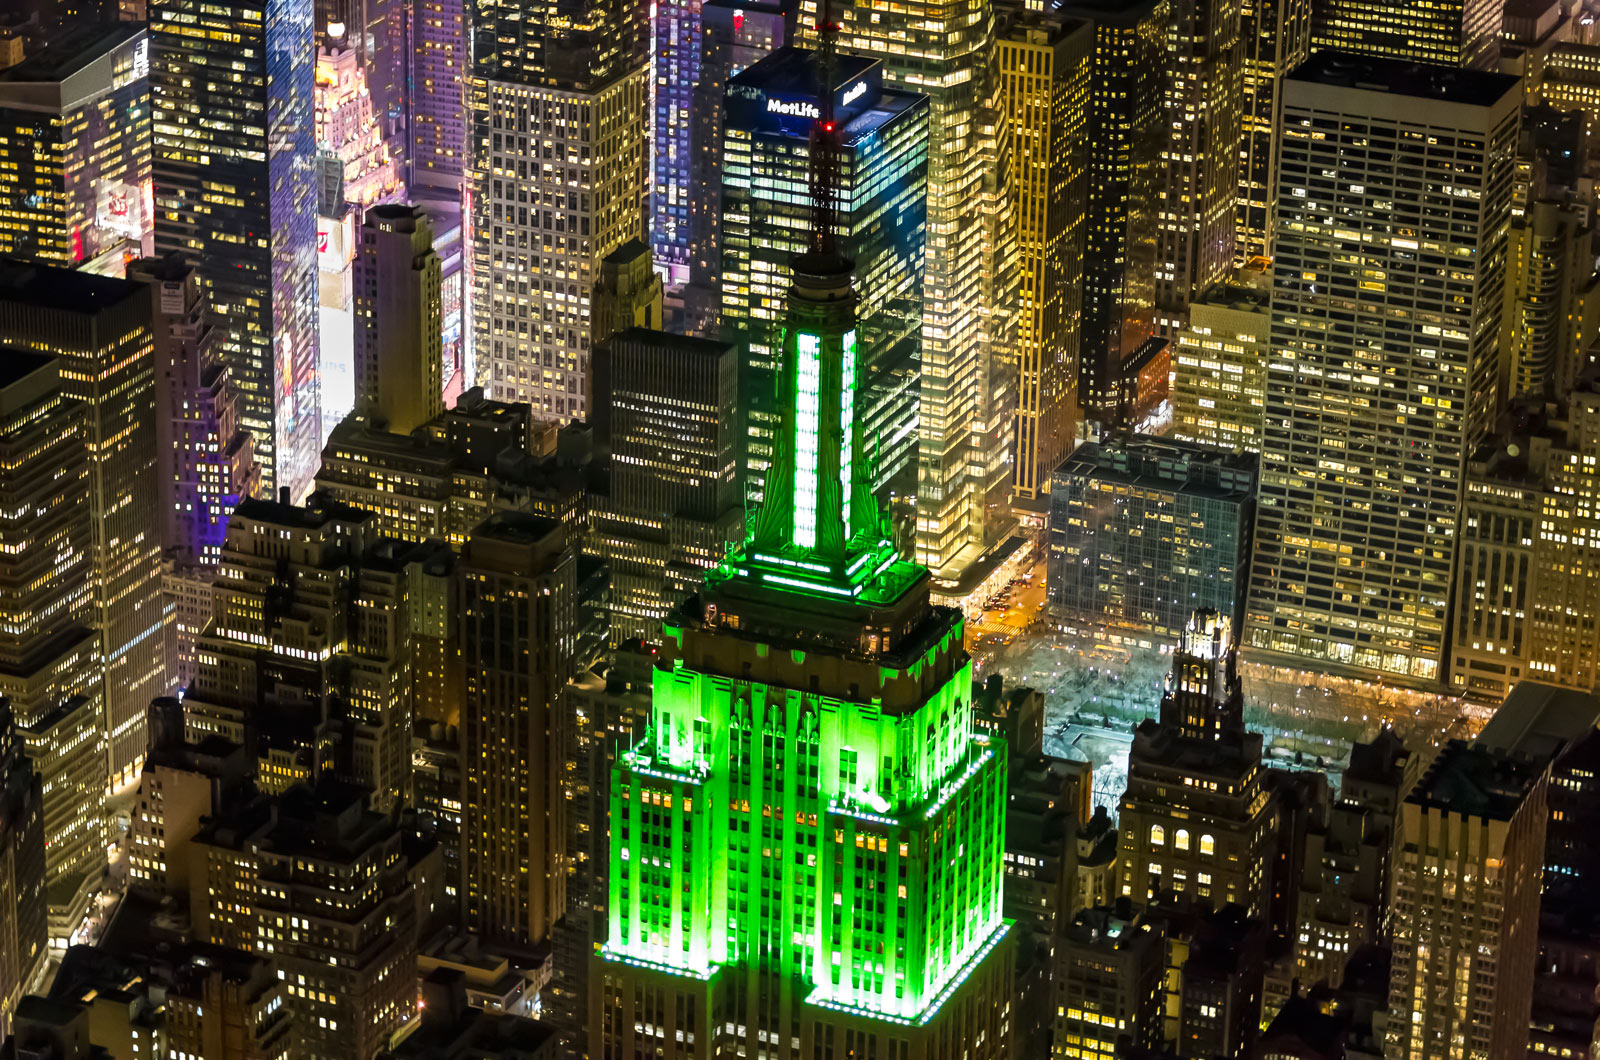 The Empire State Building on St. Patrick's Day by Evan Joseph